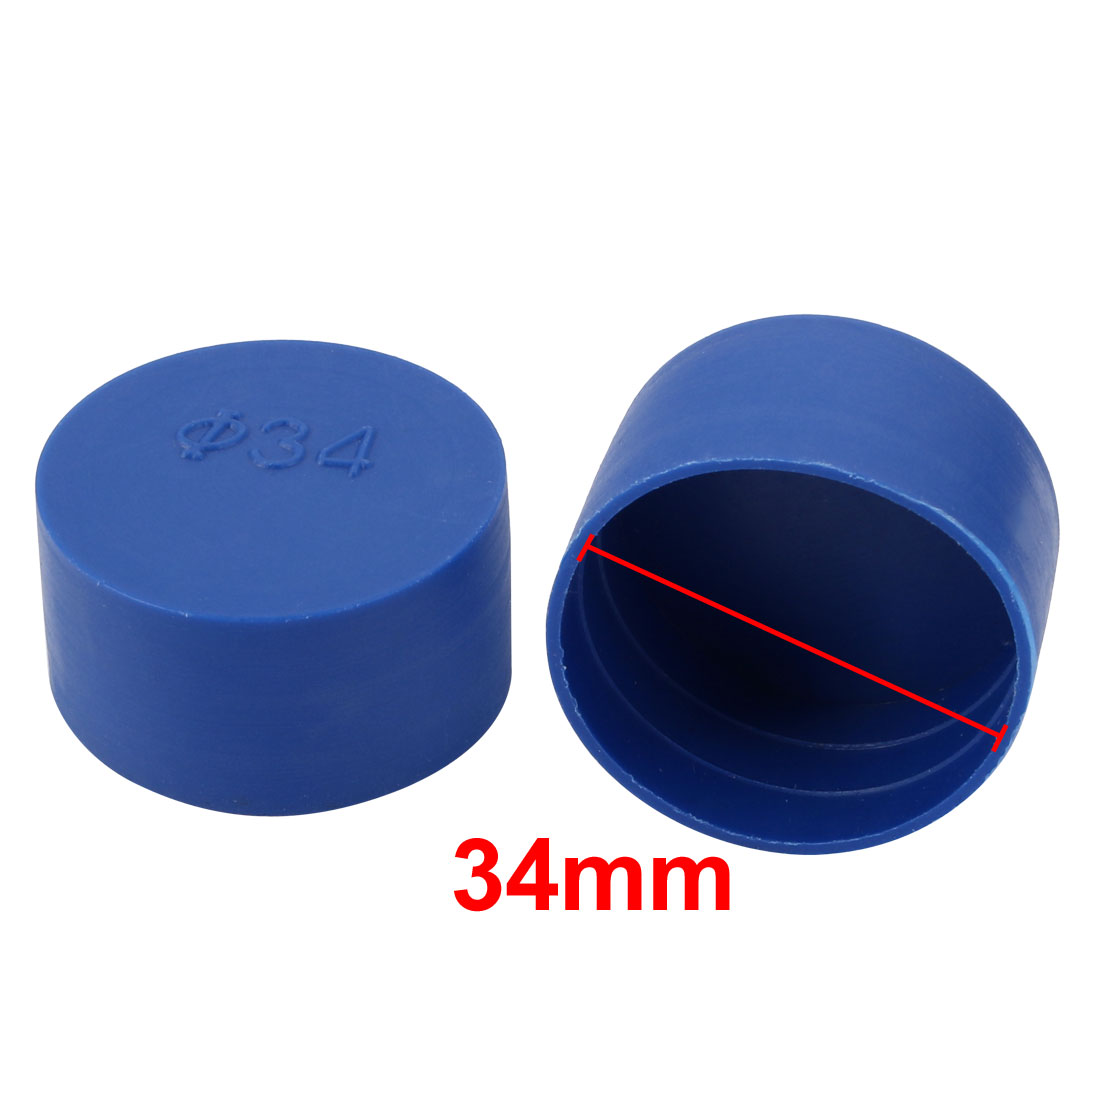 20pc 34mm Dia Interne PE Capuchon plastique protecteur filetage vis bleu Tube - image 1 de 2